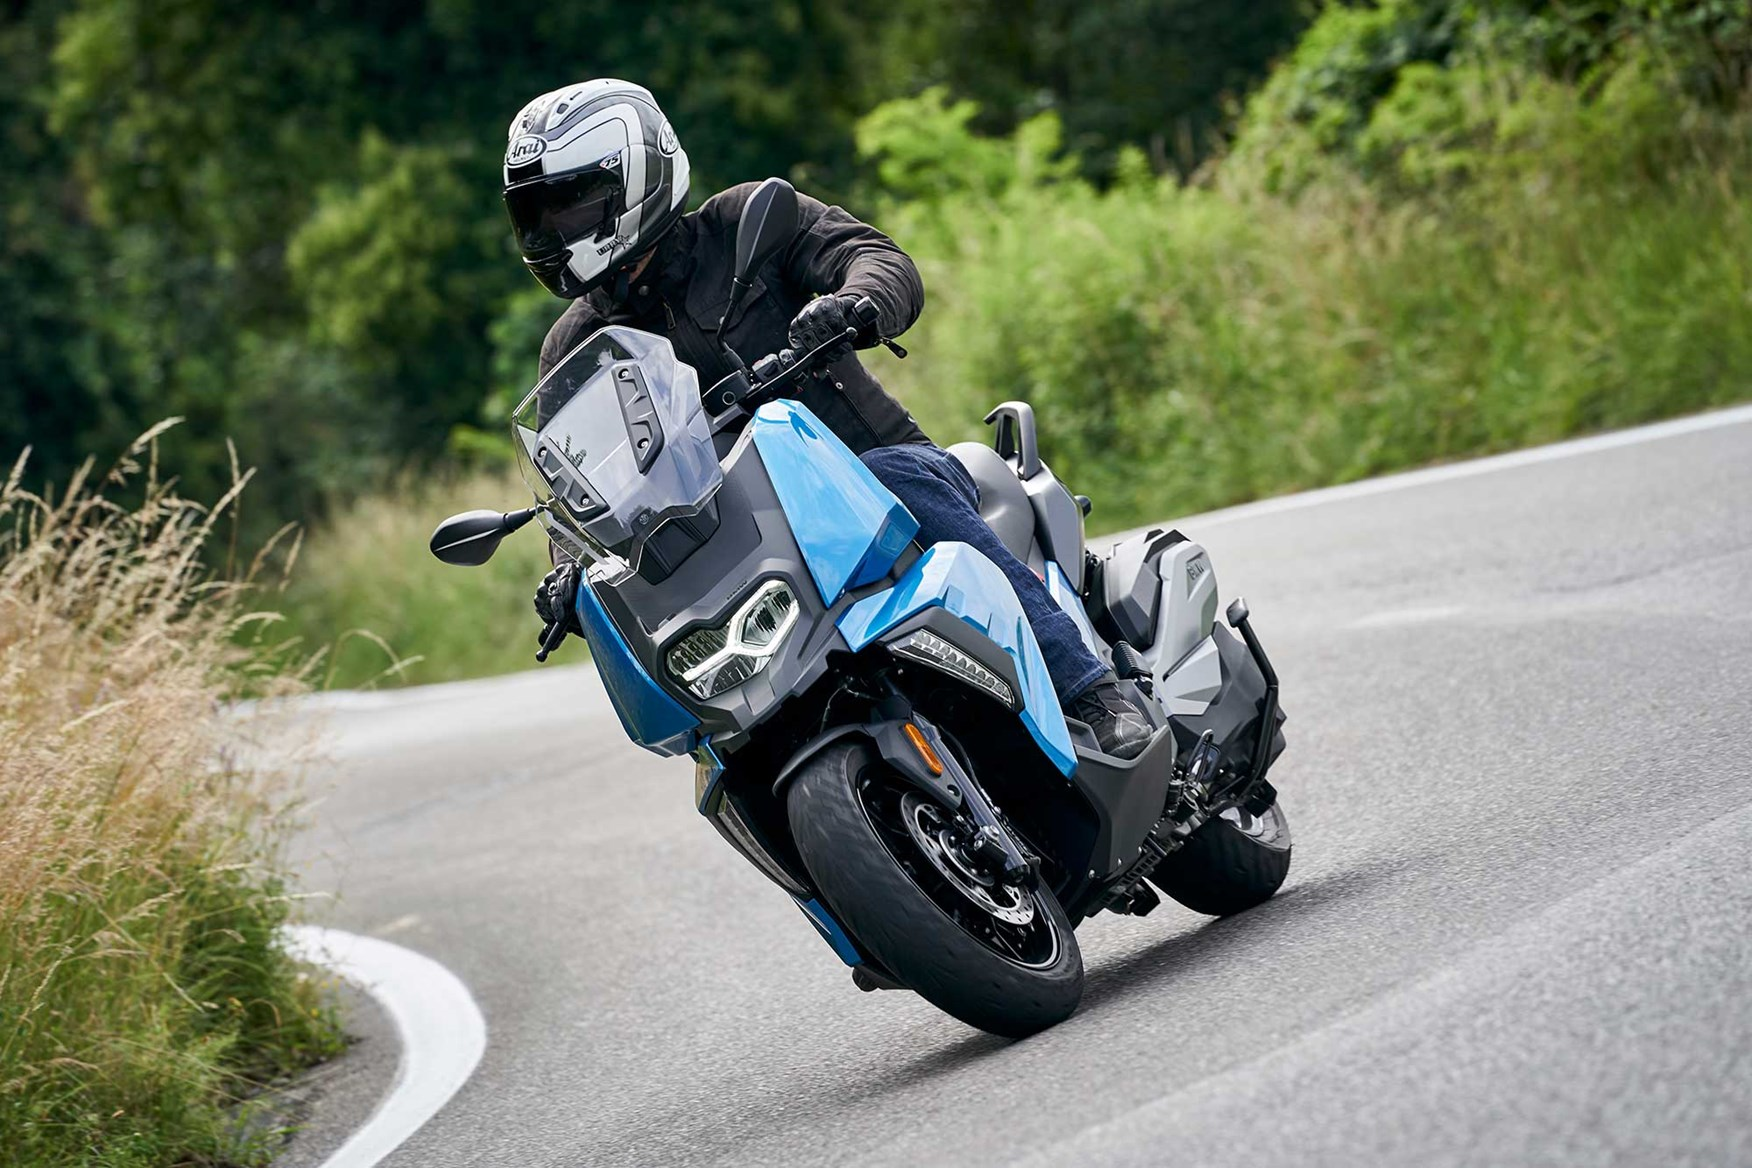 First Ride Bmw C400x Mid Size Madness Mcn Gs 1200 Fuse Box Ridden By Contributor Jon Urry